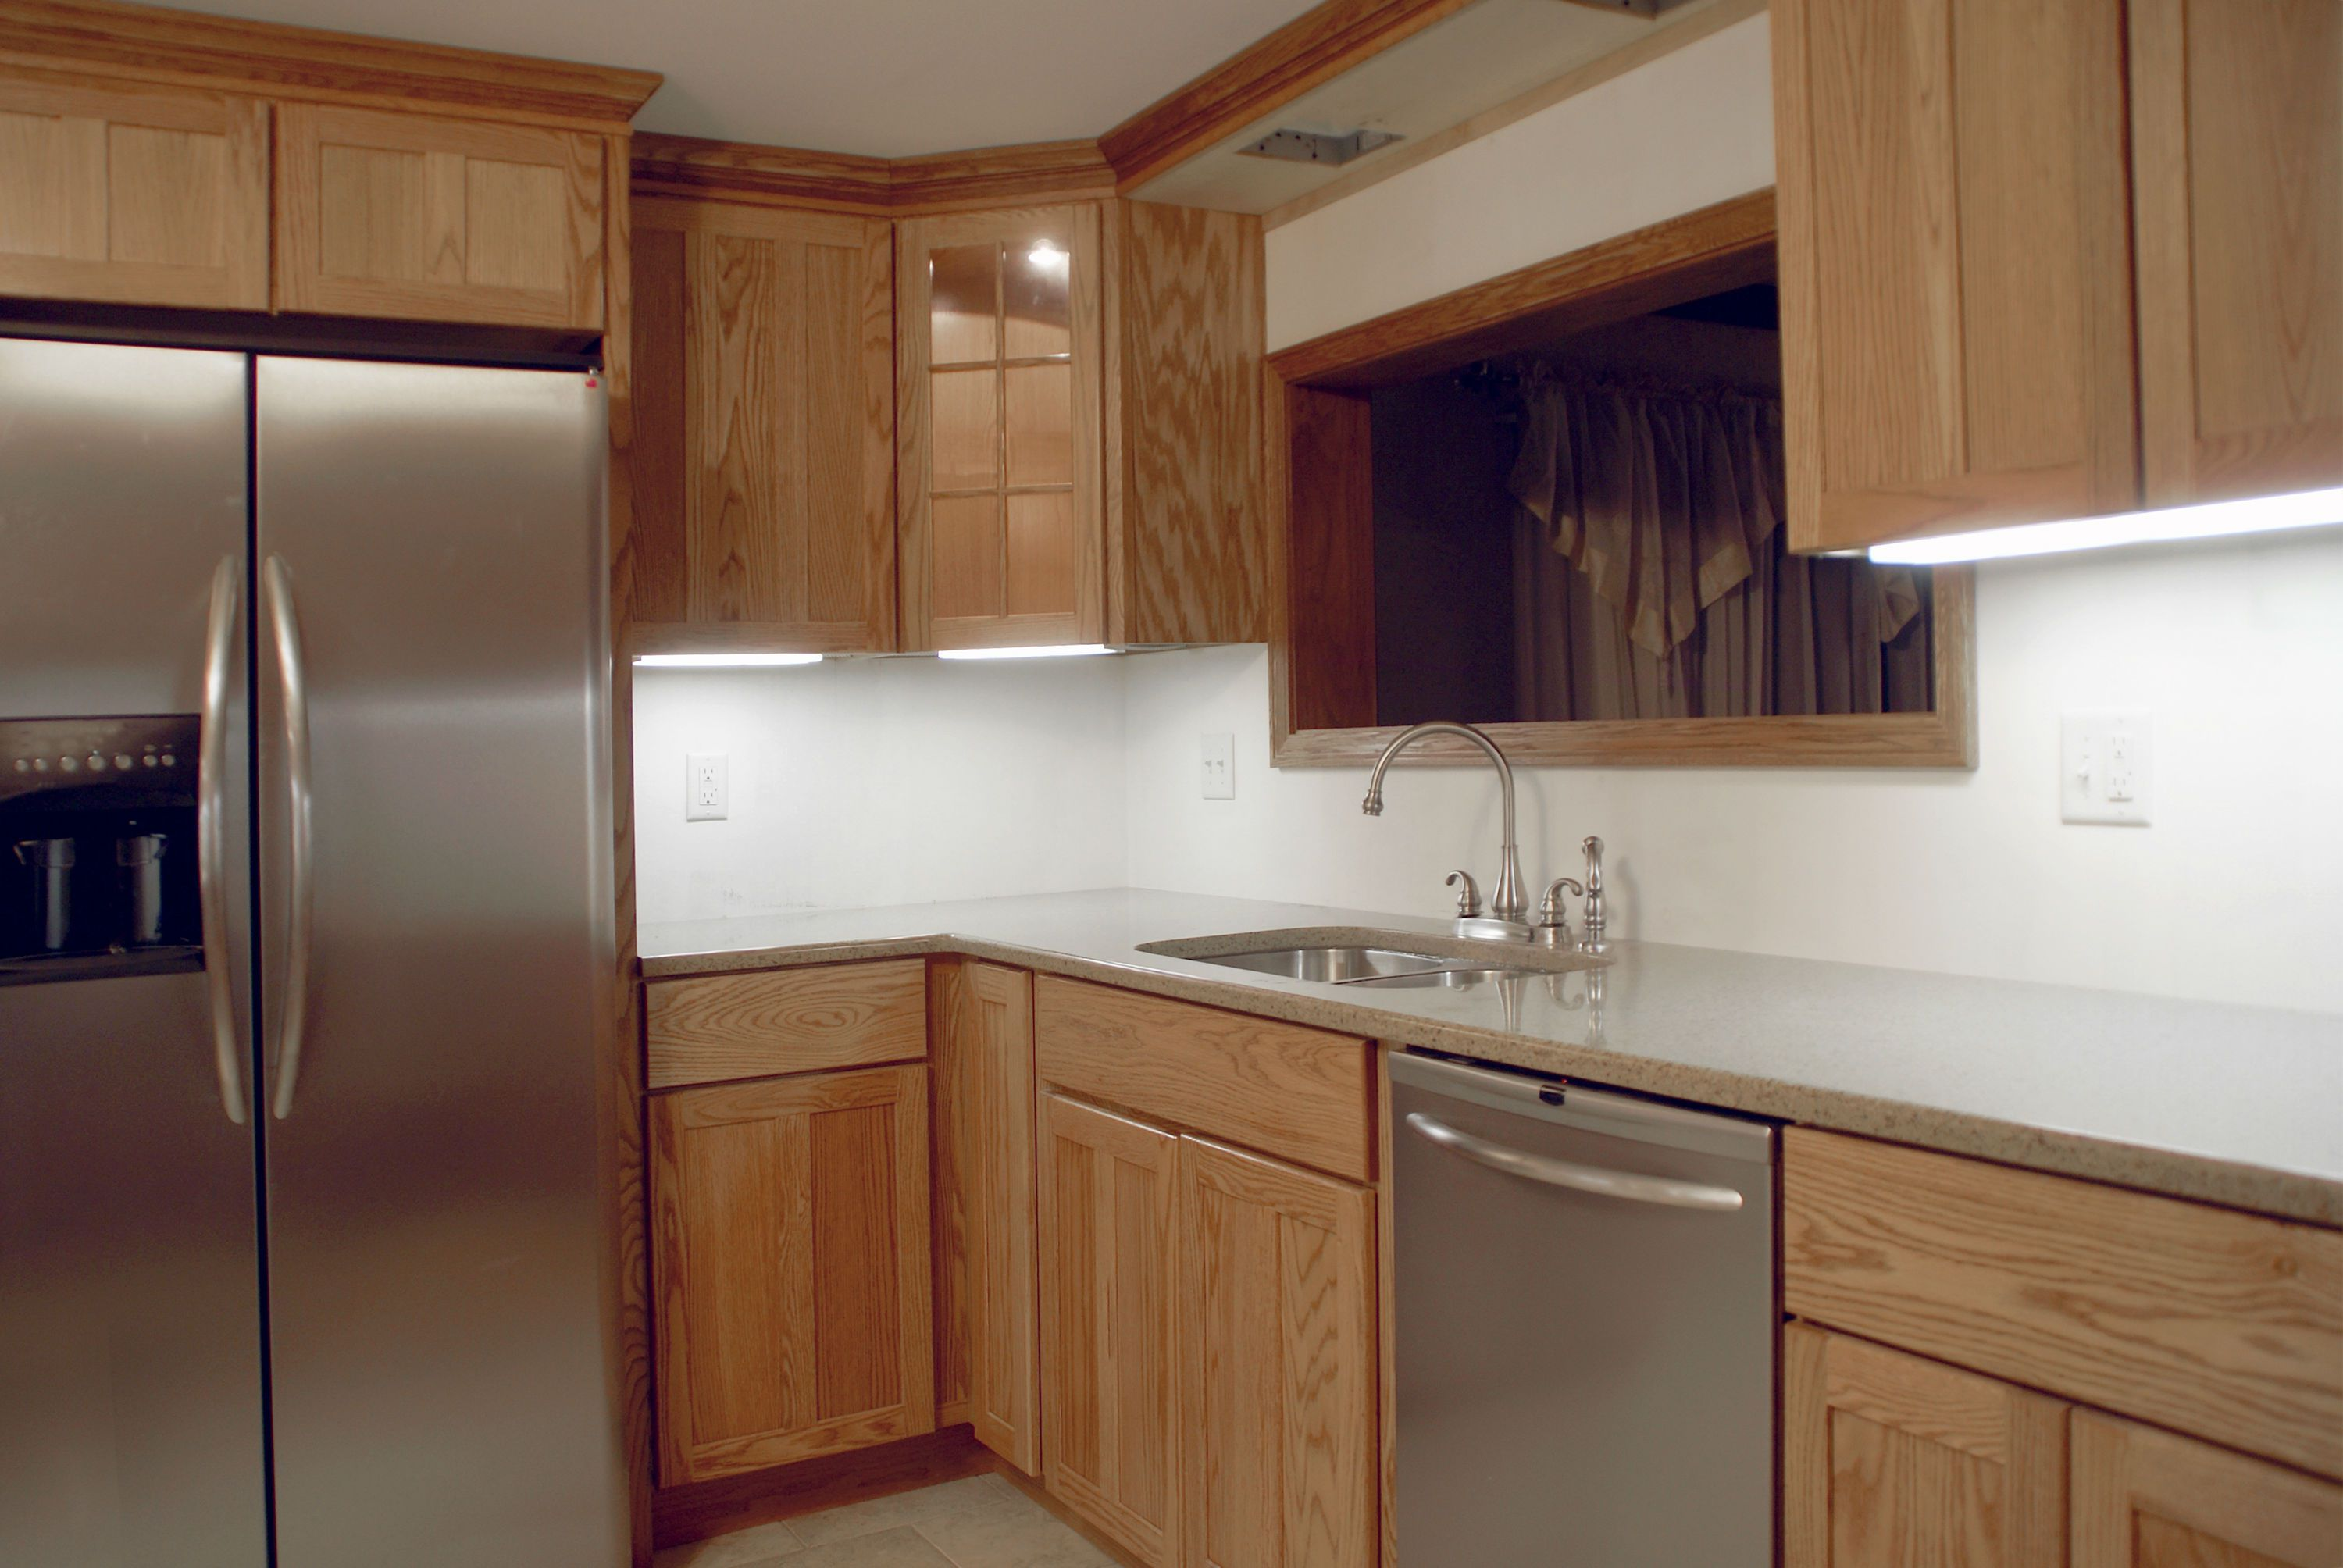 Kitchen Cabinet Wood Reconditioning Refacing Or Replacing Kitchen Cabinets